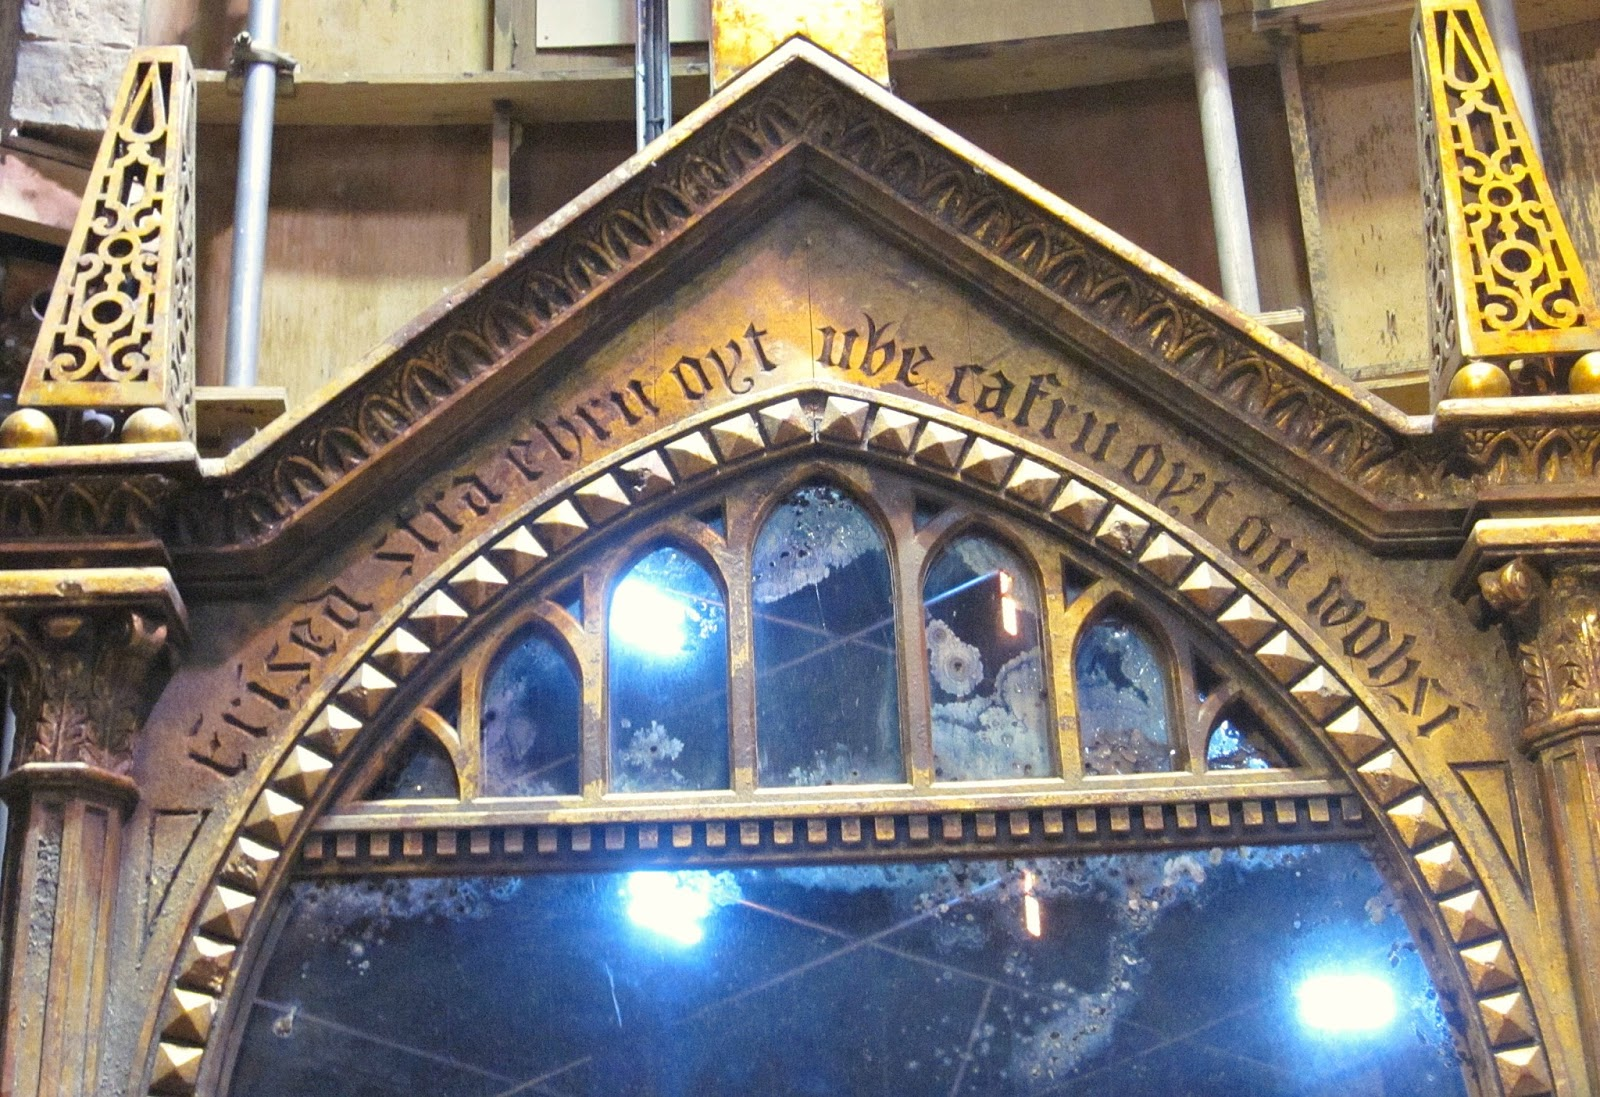 The Mirror of Erised at The Making Of Harry Potter Warner Brothers Studio Tour